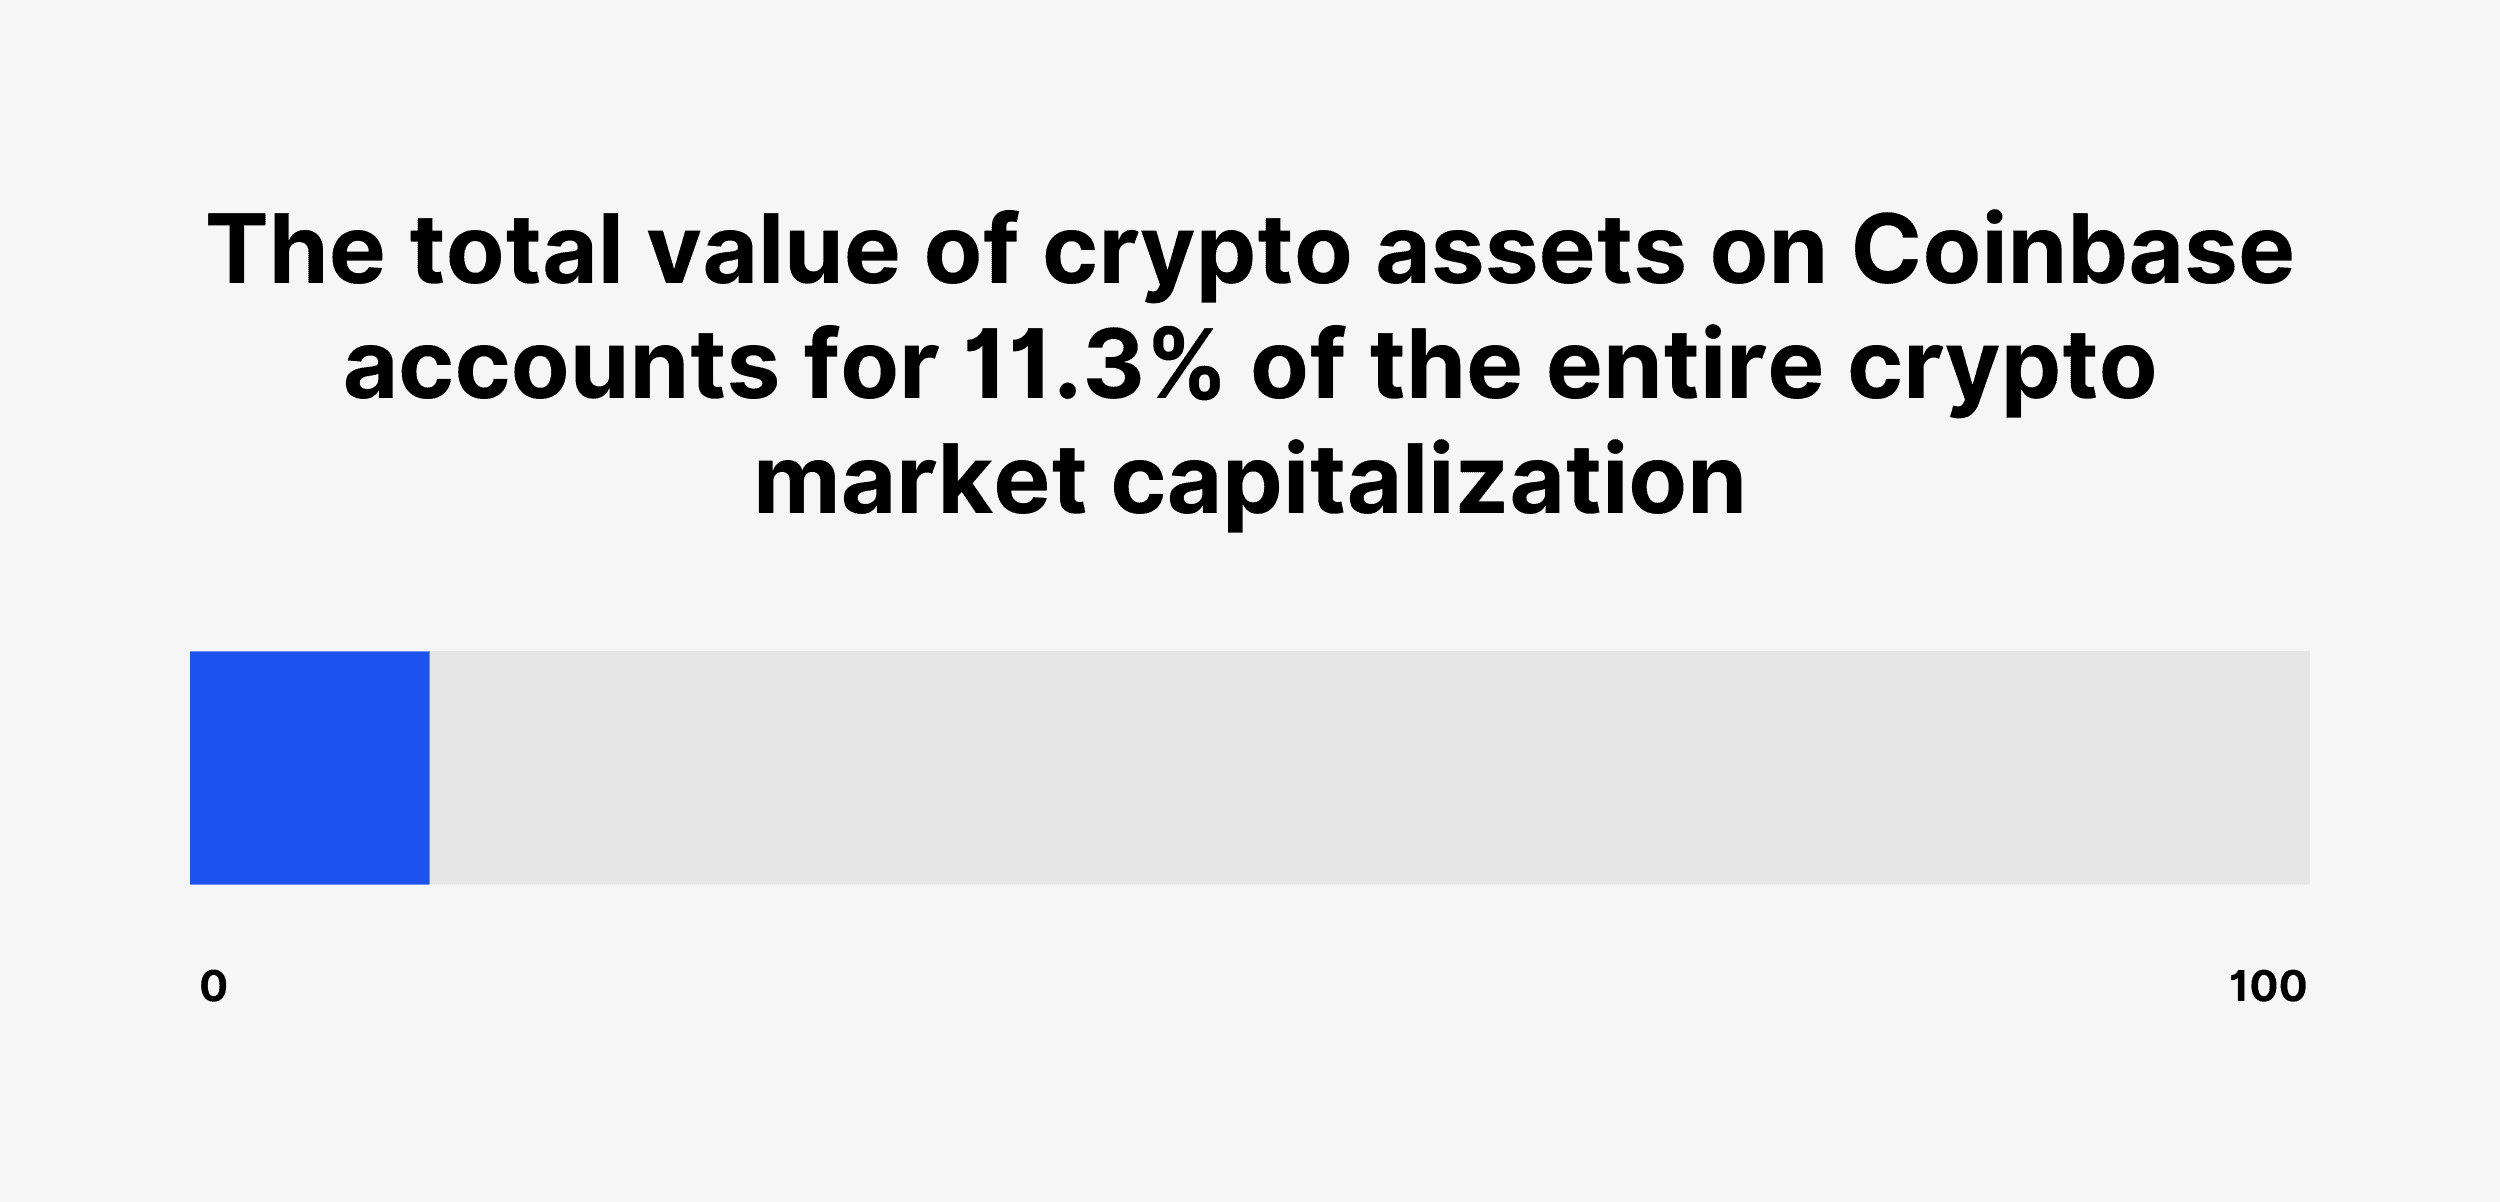 The total value of crypto assets on Coinbase accounts for 11.3% of the entire crypto market capitalization